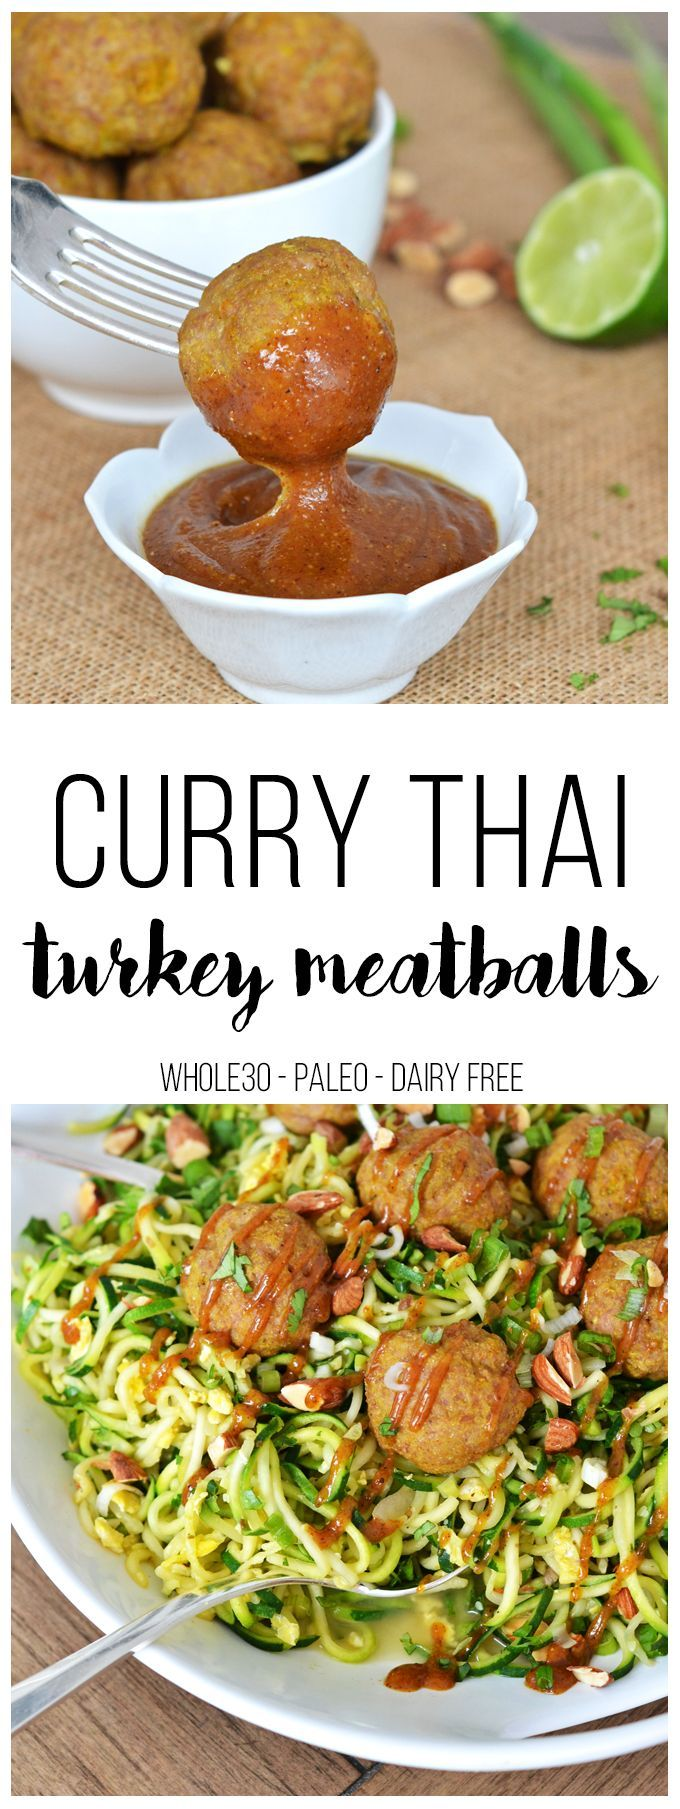 These Curry Thai Turkey Meatballs are super easy to throw together, Whole30, Paleo and packed with flavor and protein. A quick curry and almond butter sauce compliment them perfectly!